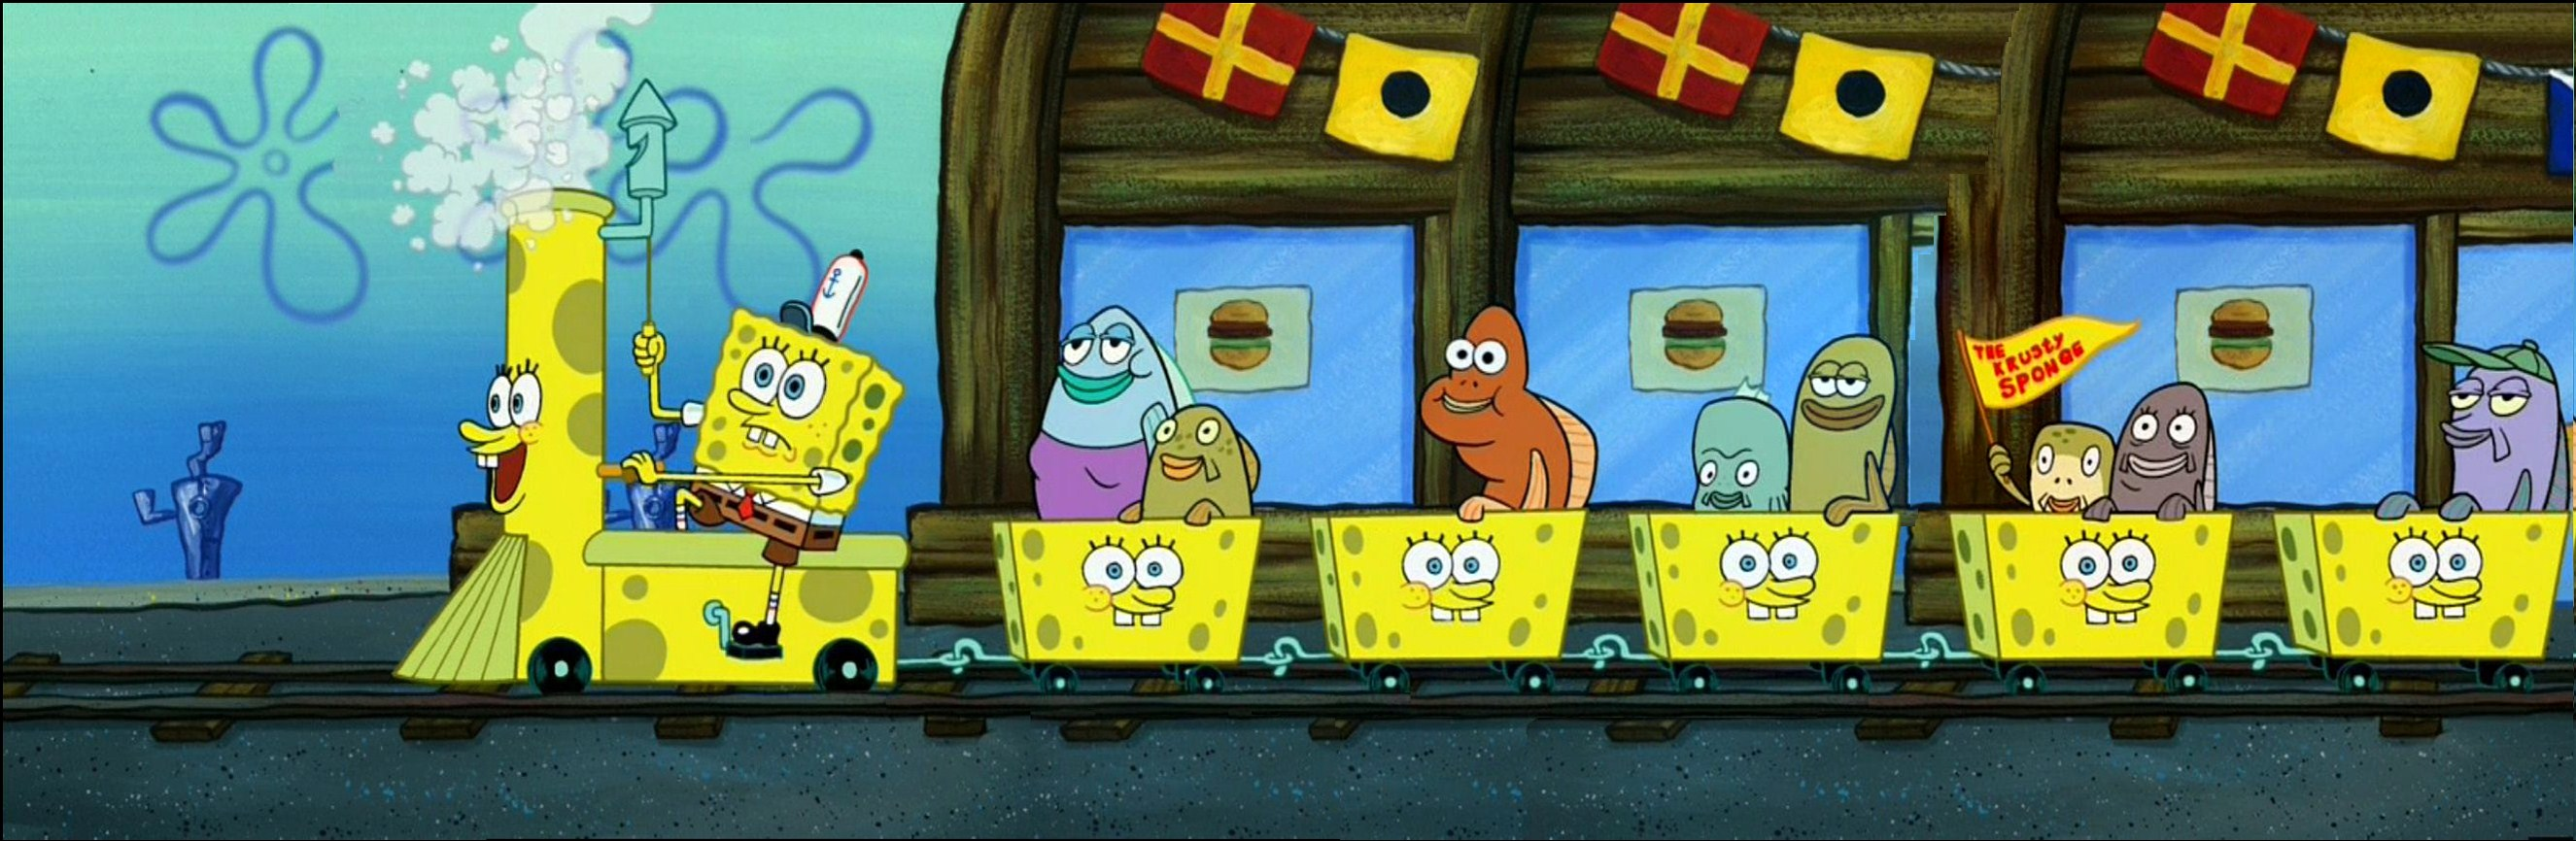 Krusty Sponge Fun Train